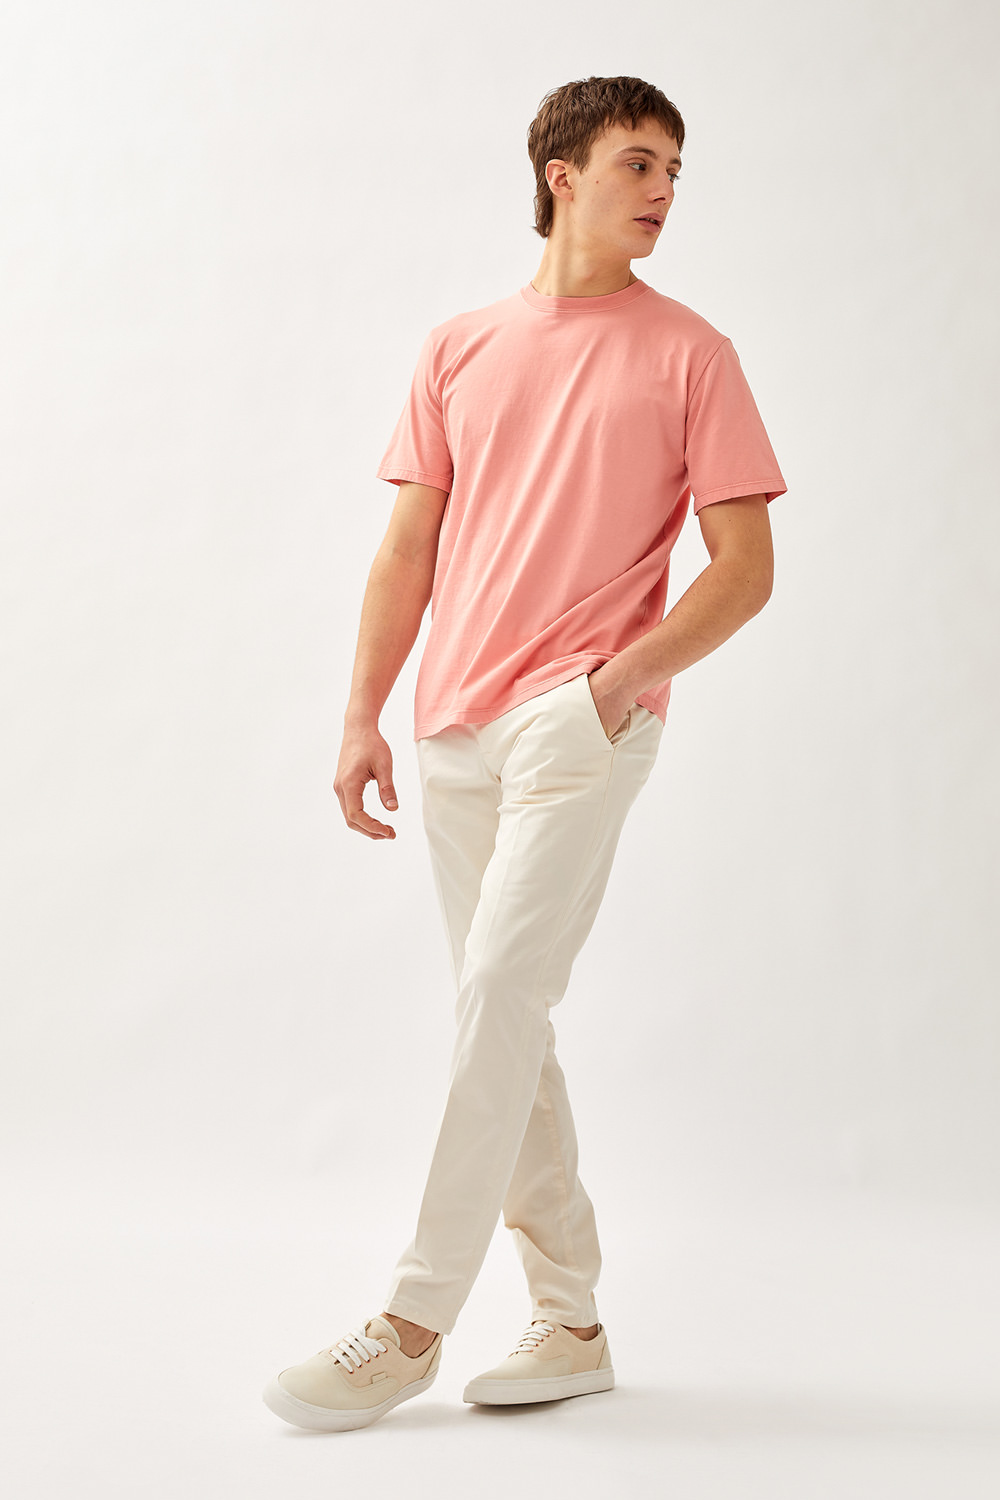 ROY ROGERS: NEW ROLF PXT READ PANTS IN STRETCH GABARDINE